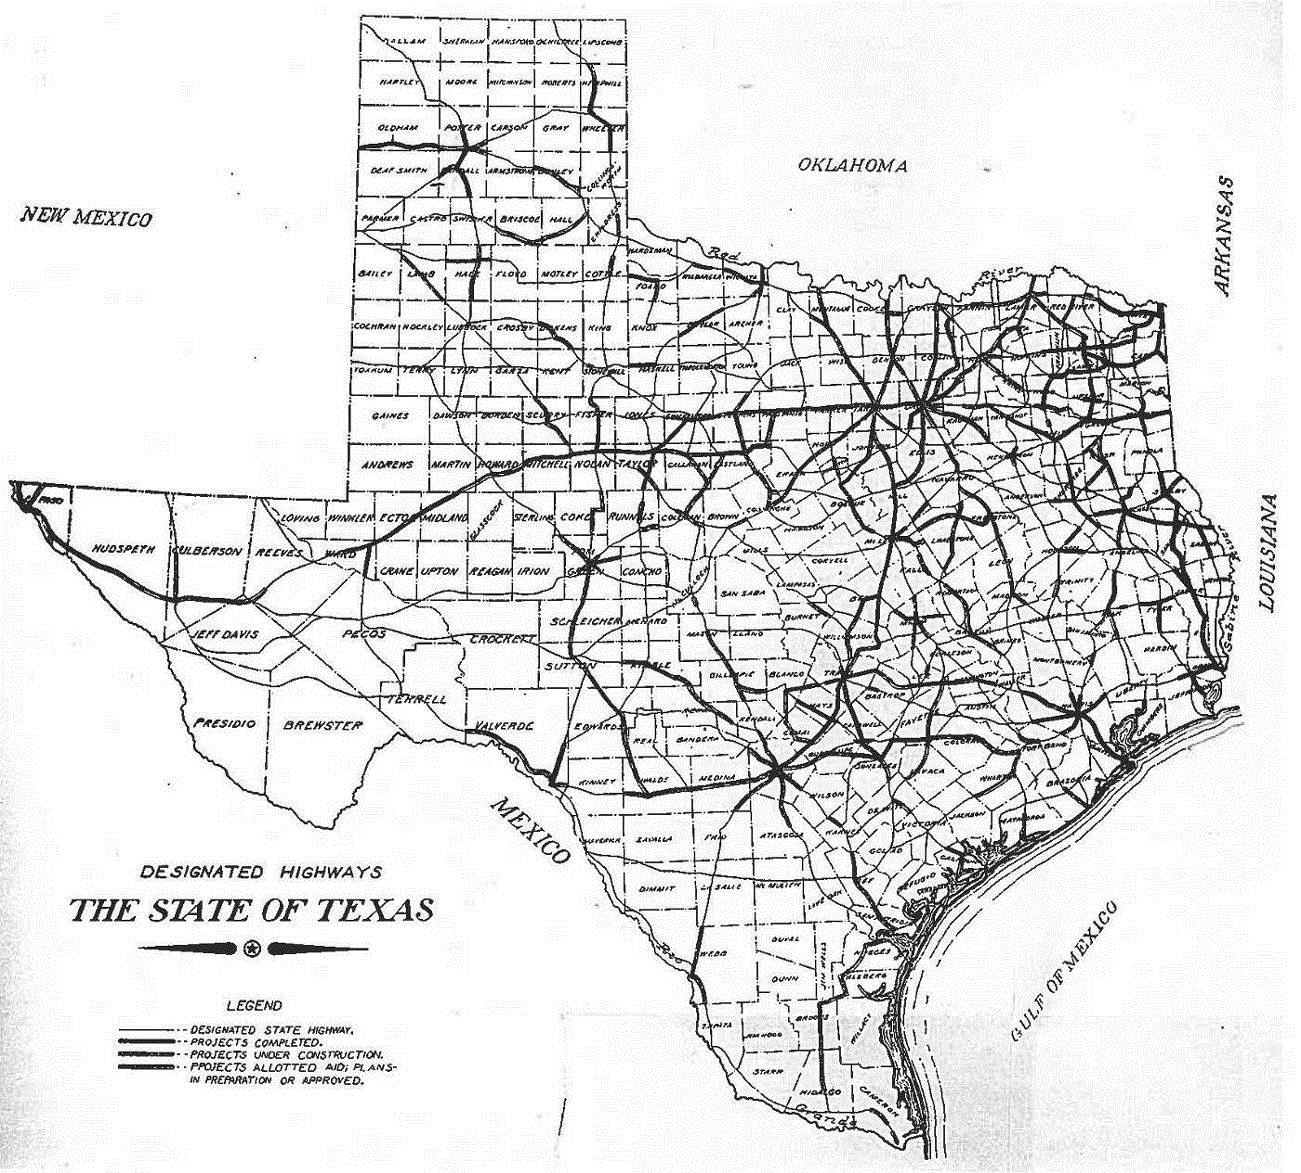 Texas Highway Department | Thc.texas.gov - Texas Historical Commission intended for Txdot Set Up Calendar Image Outlook